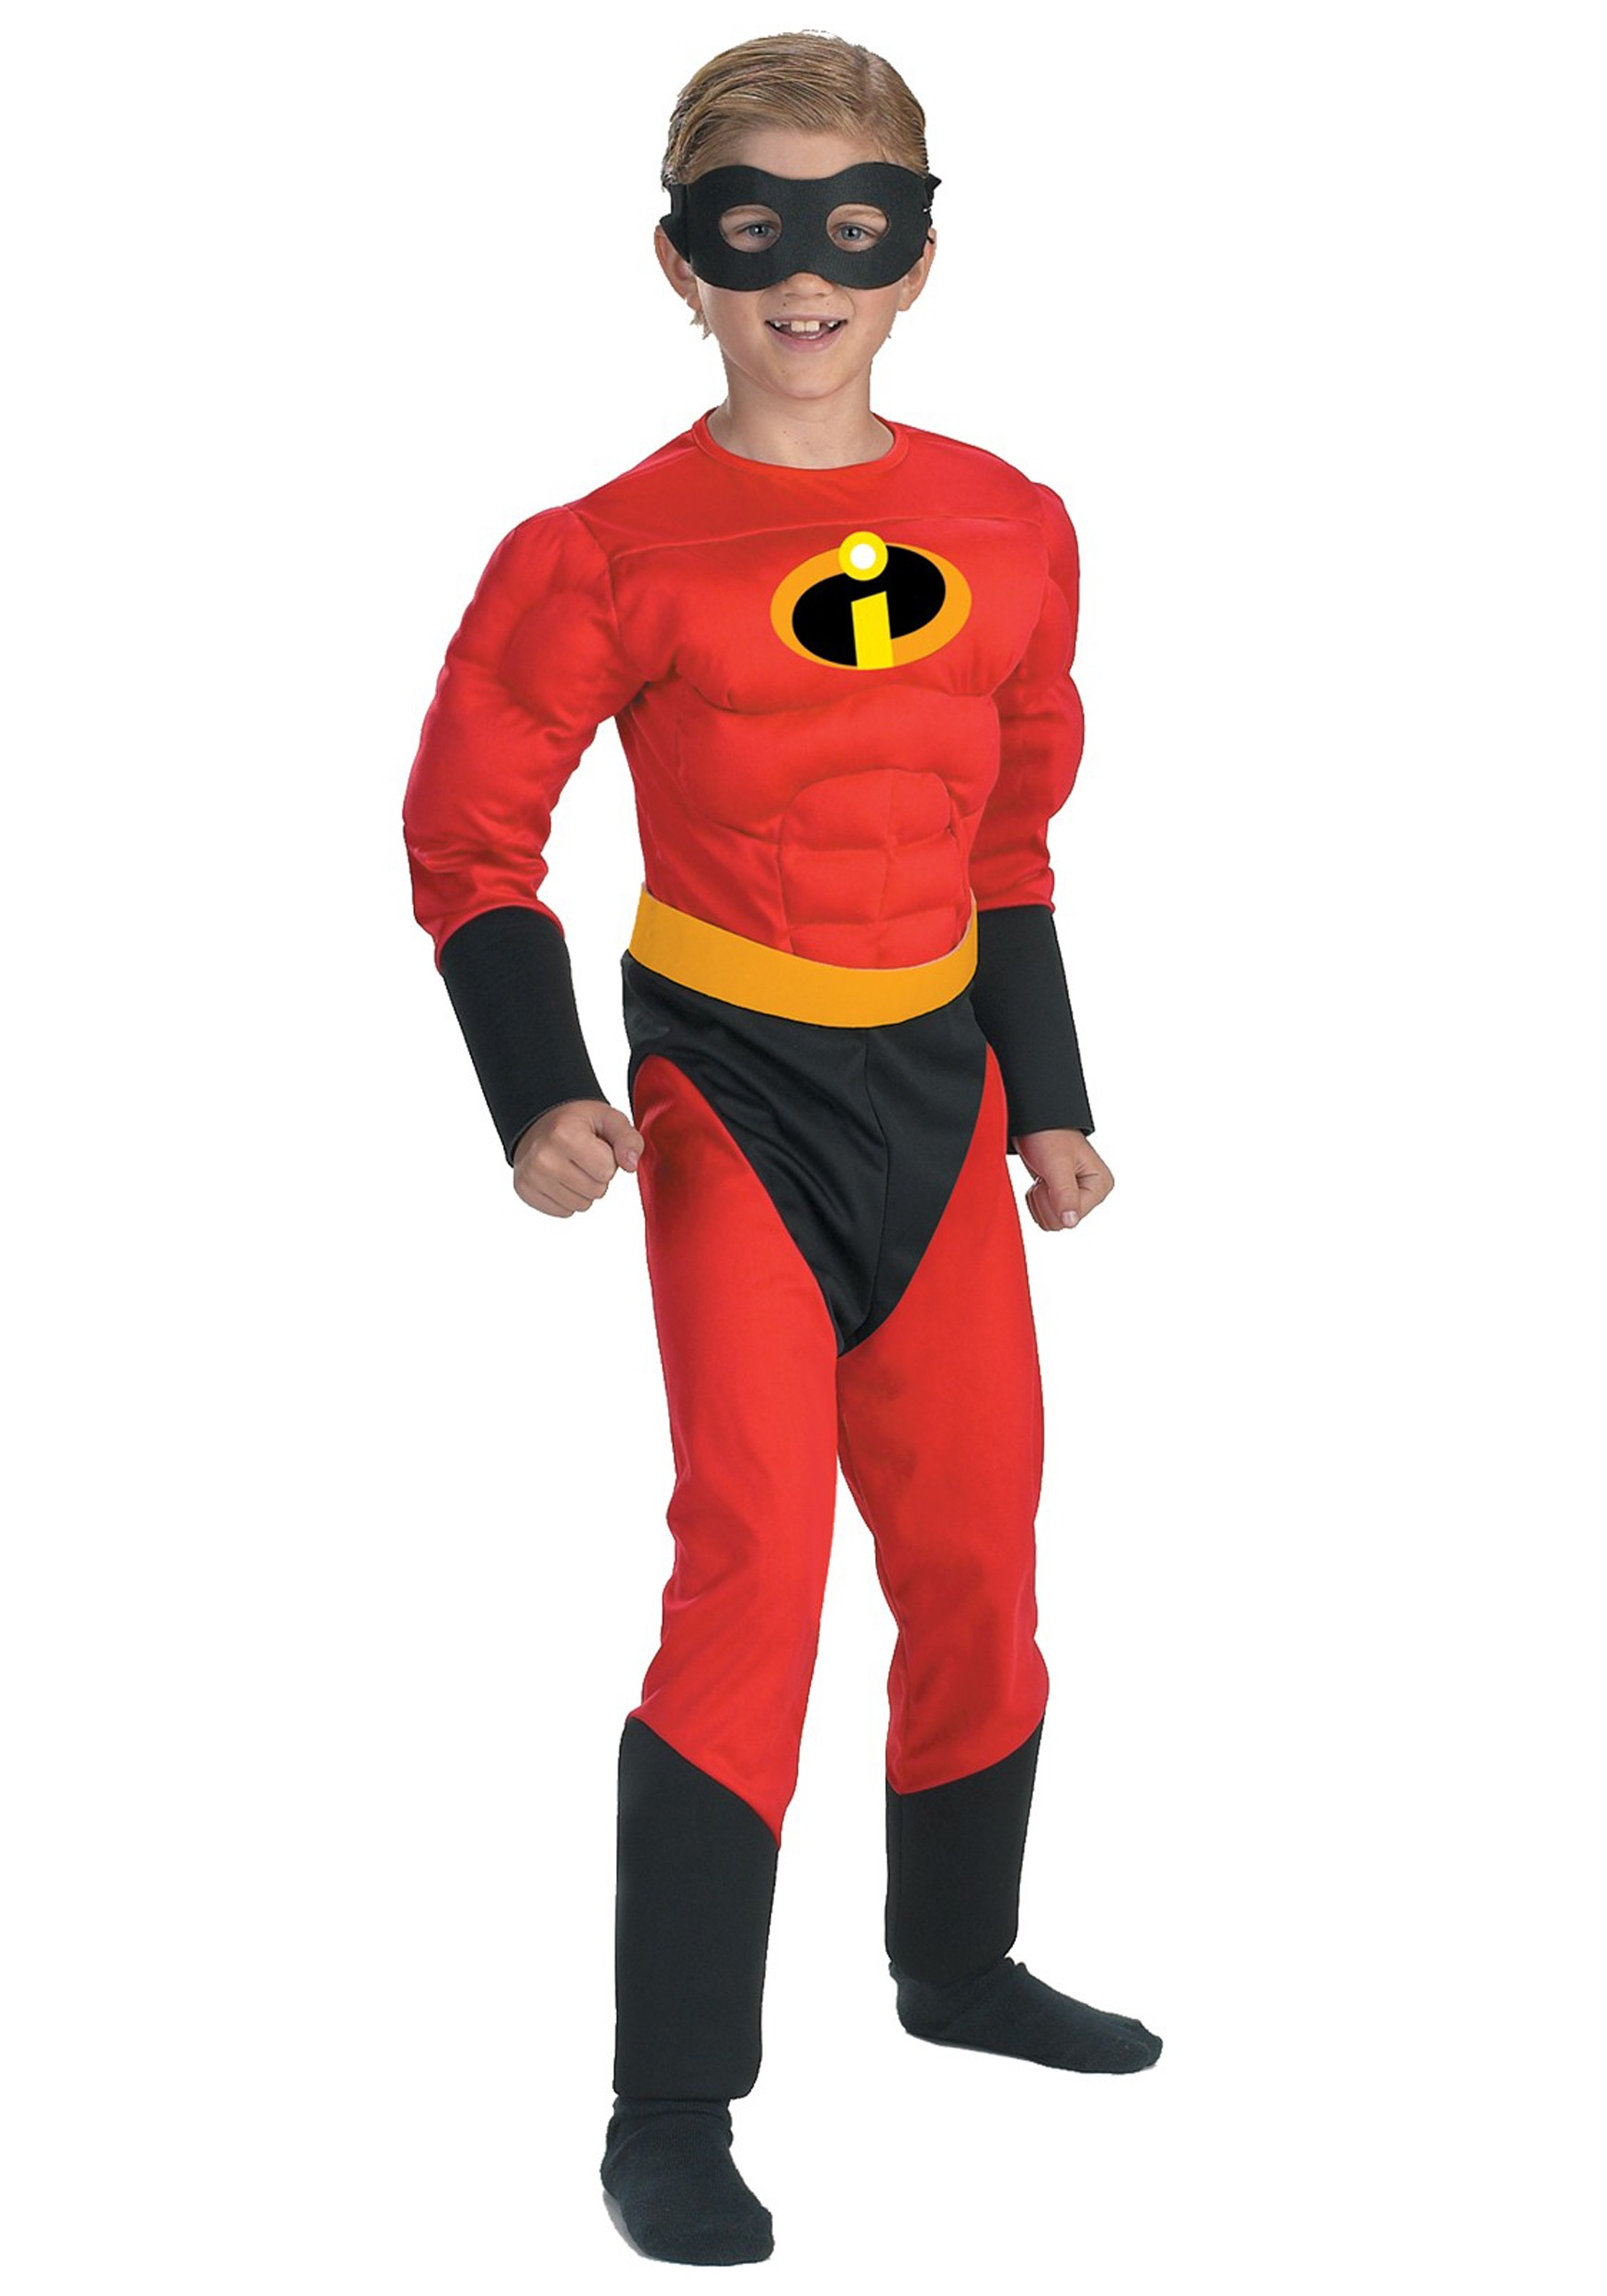 sc 1 st  Halloween Costumes & Kids Incredibles Dash Costume